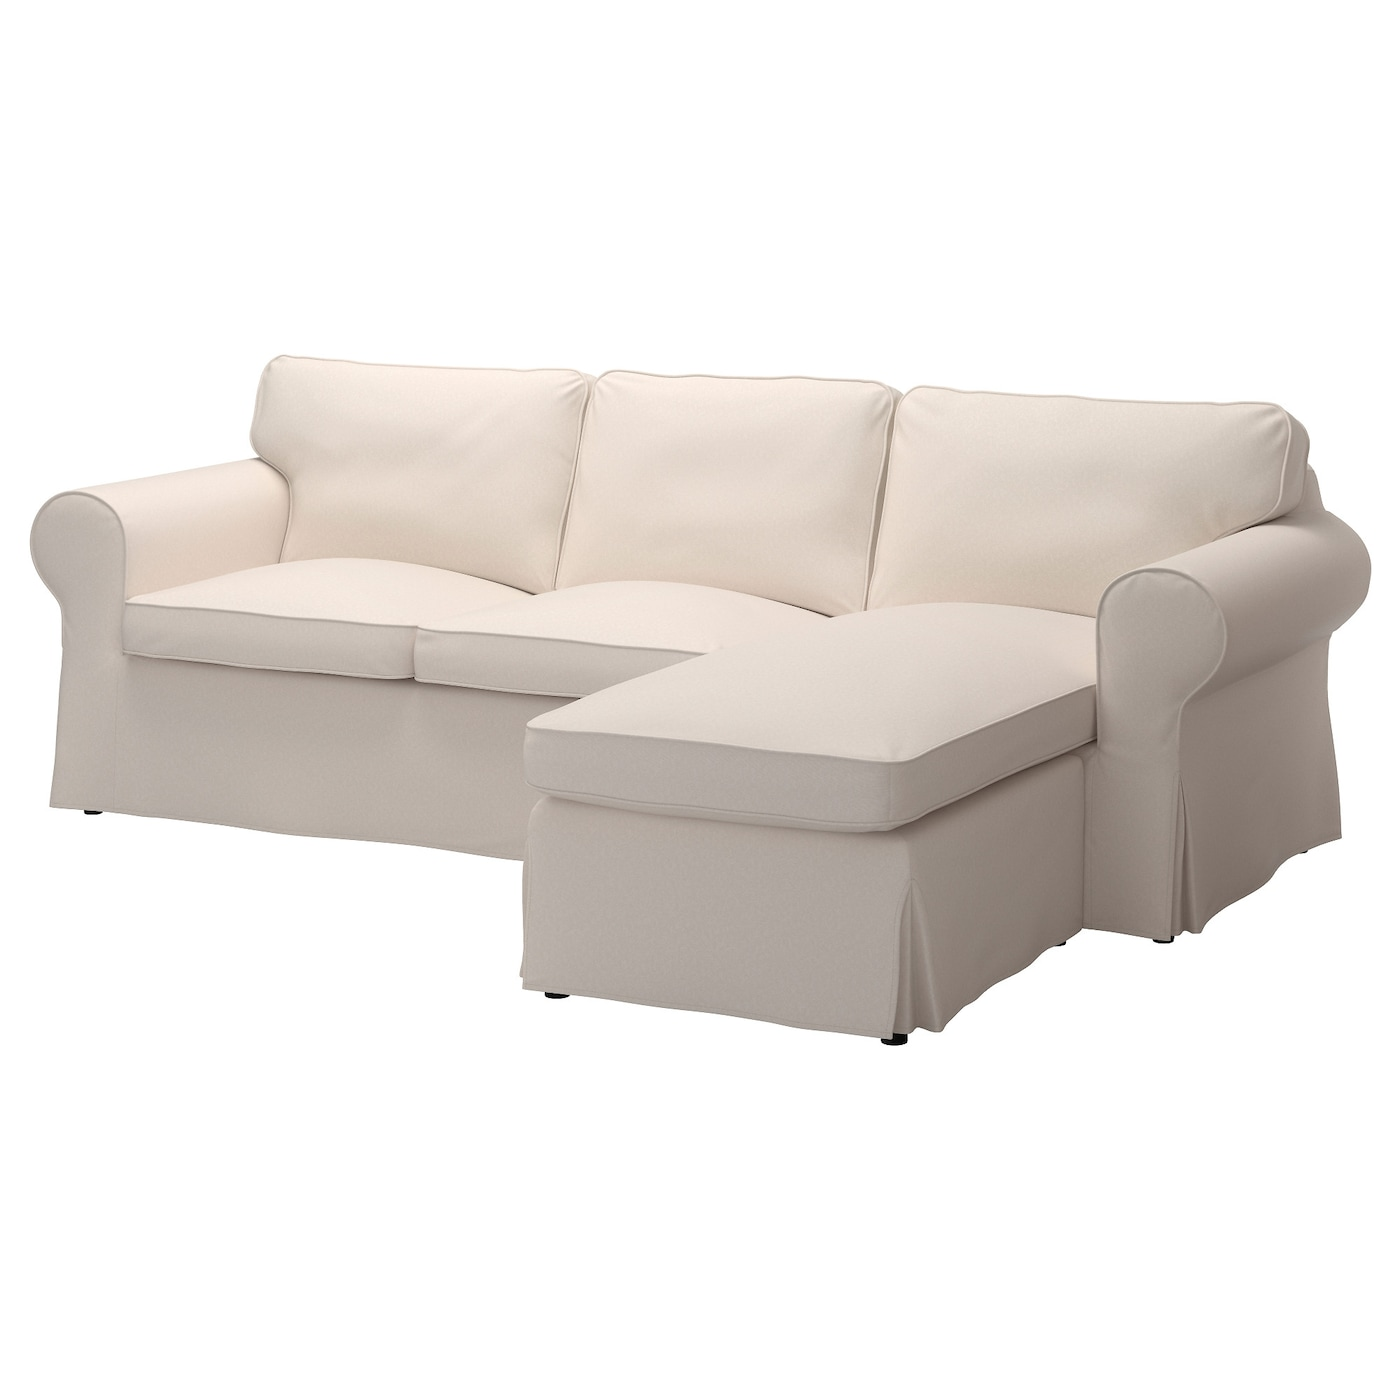 ektorp two seat sofa and chaise longue lofallet beige ikea